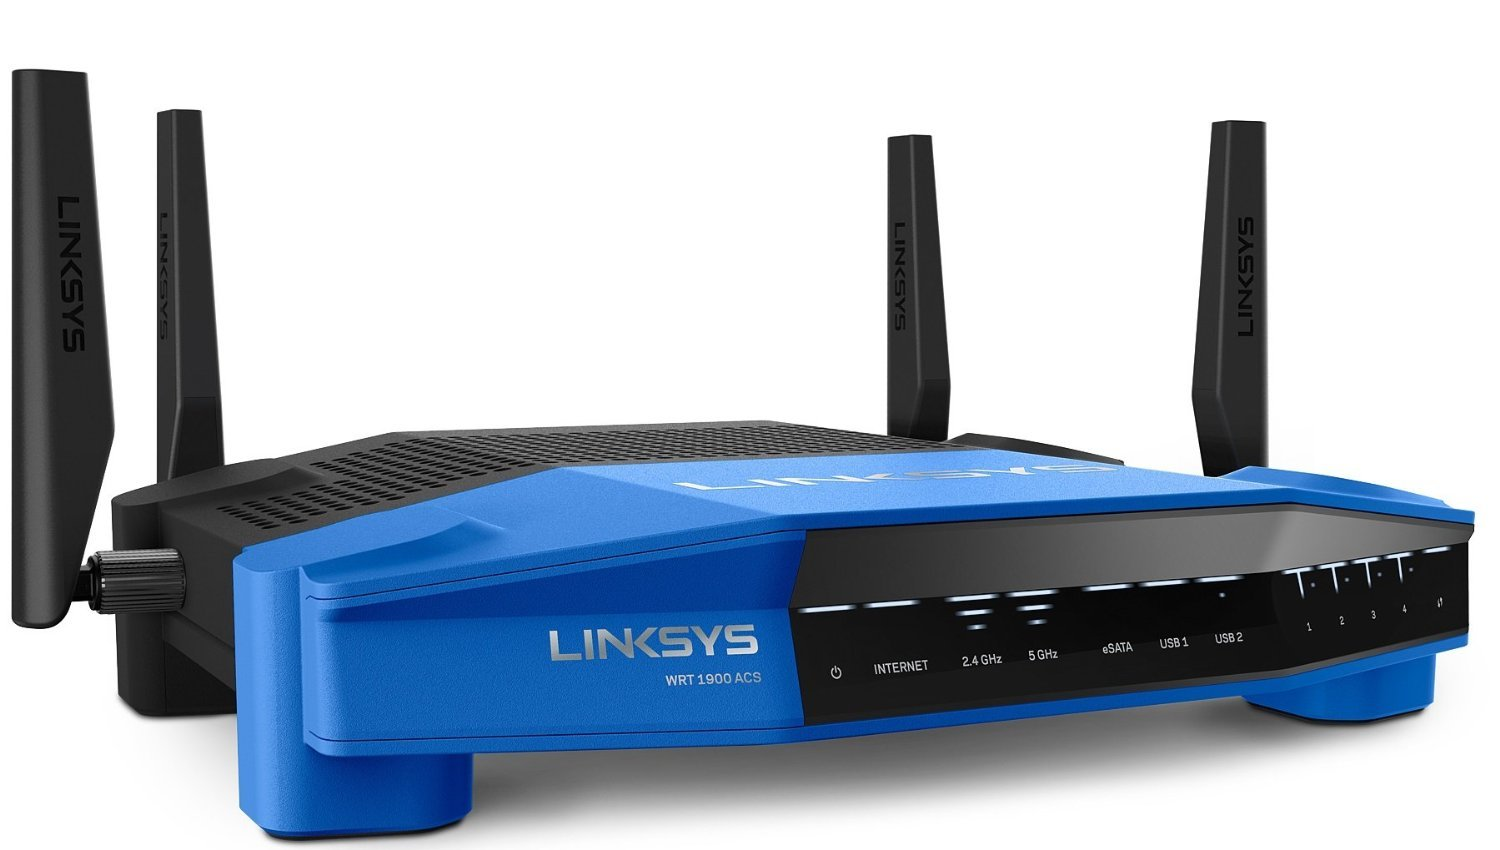 Linksys WRT1900ACS Open Source wifi Router